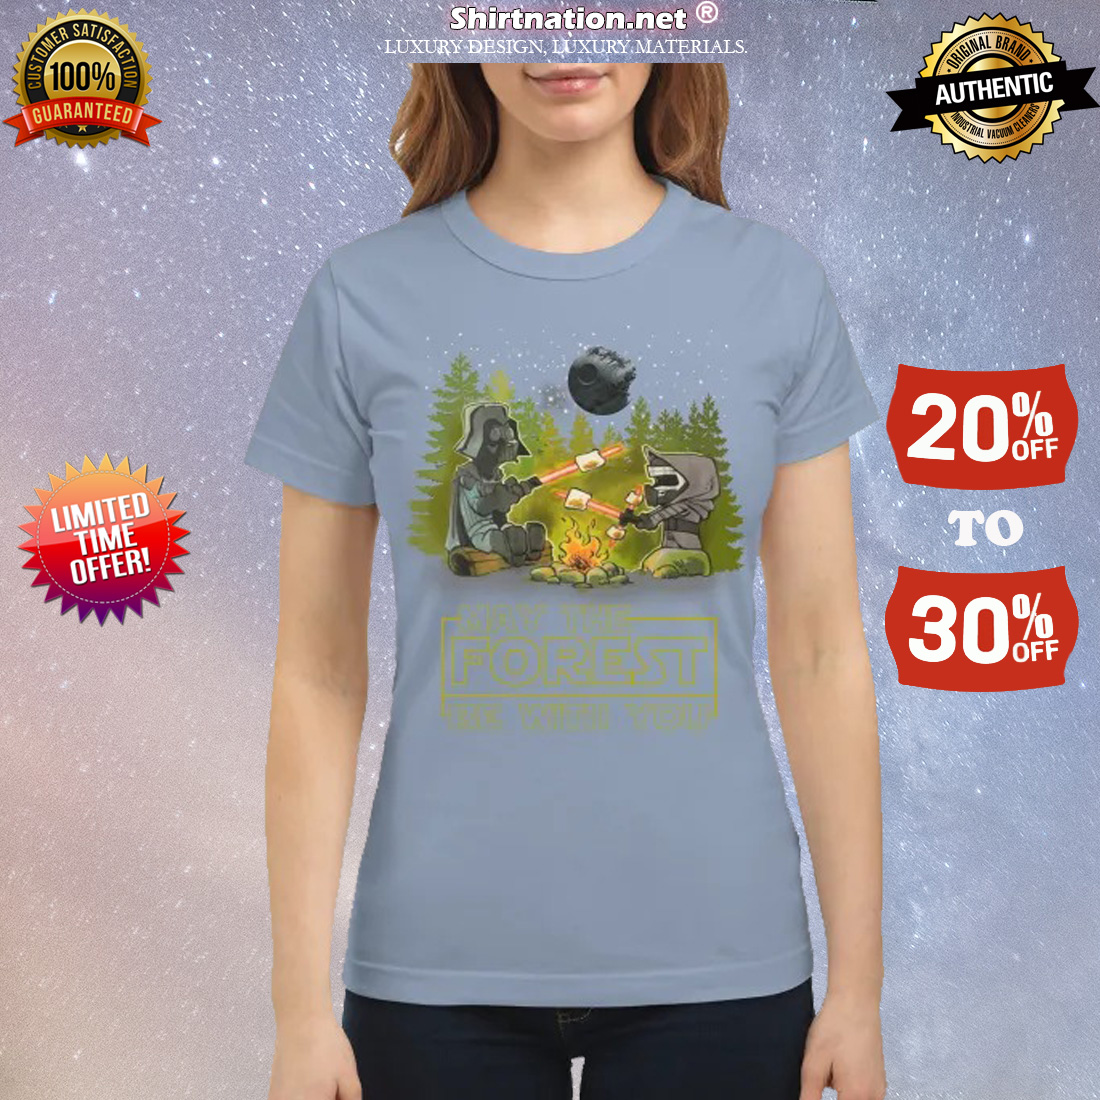 Camping may the forest be with you classic shirt